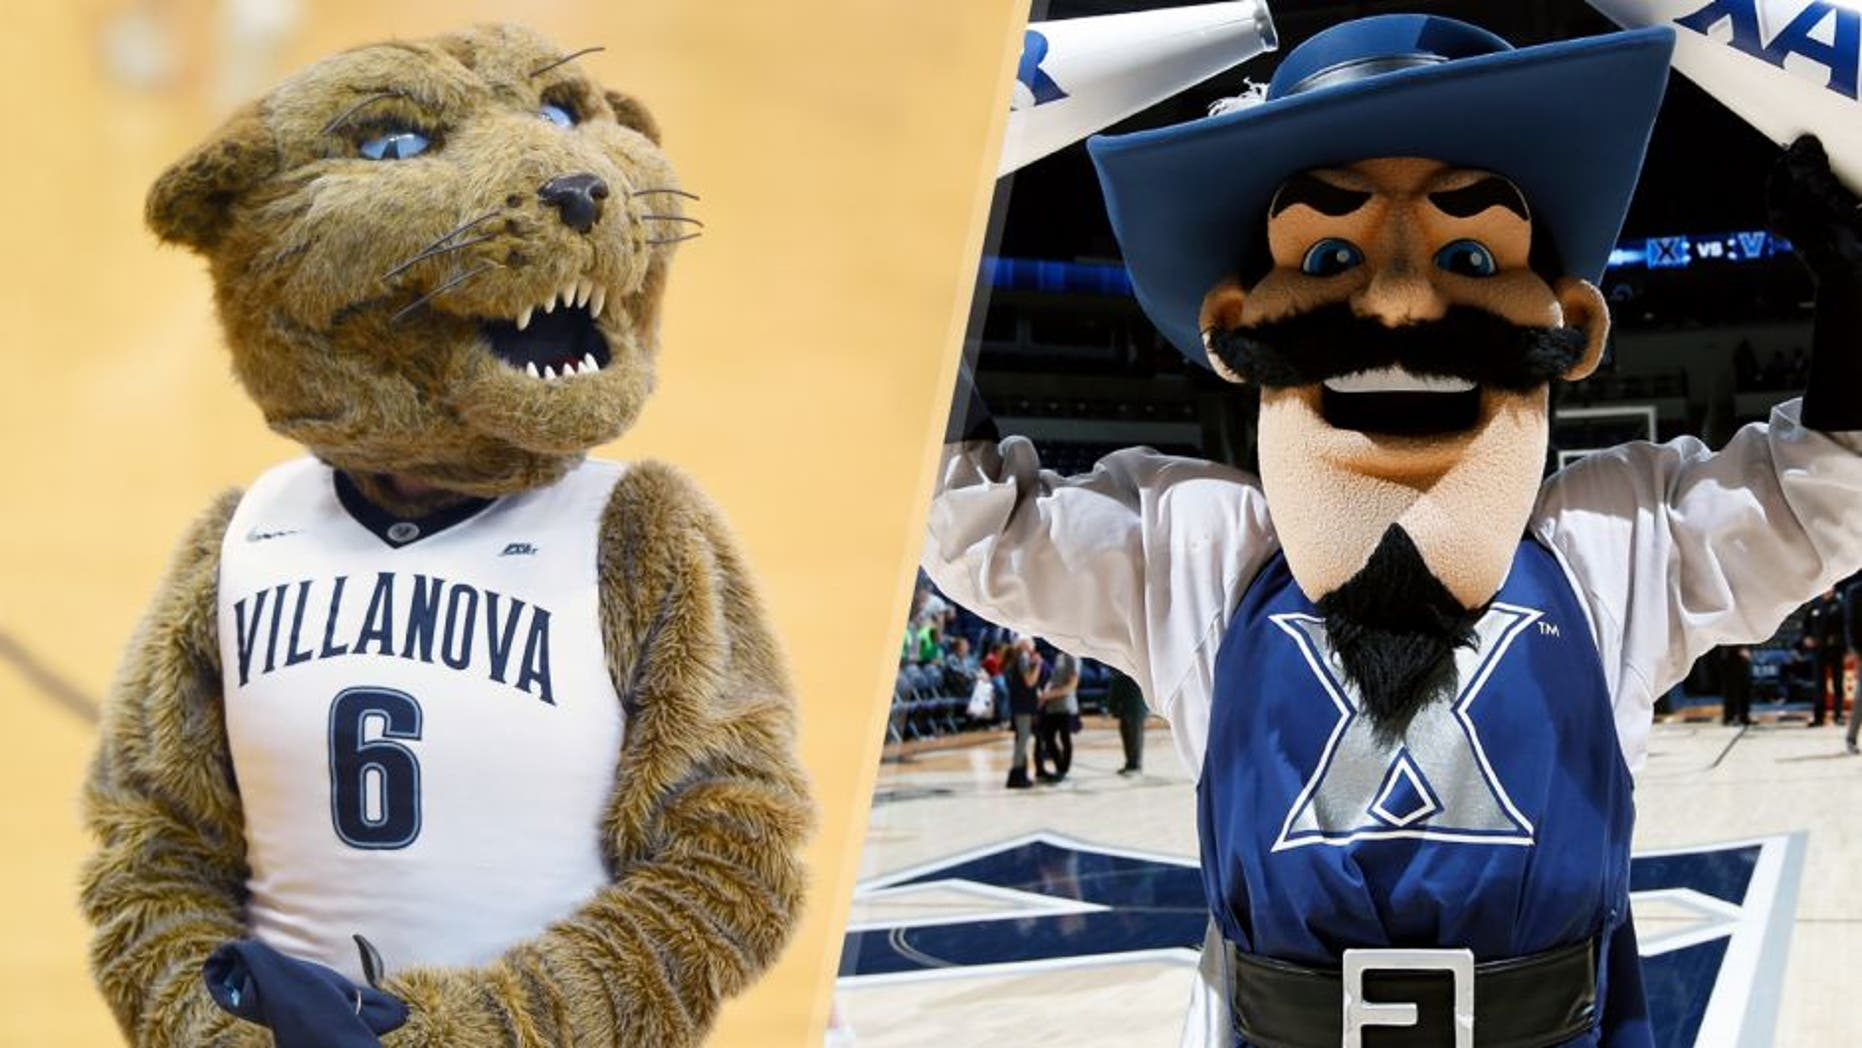 VILLANOVA, PA - DECEMBER 31: The Villanova Wildcats mascot on the floor during a college basketball game against the Xavier Musketeers at The Pavilion on December 31, 2015 in Villanova, Pennsylvania. The Wildcats won 95-64. (Photo by Mitchell Layton/Getty Images) CINCINNATI, OH - FEBRUARY 17: Xavier Musketeers mascot D'Artagnan celebrates after the game against the Providence Friars at Cintas Center on February 17, 2016 in Cincinnati, Ohio. Xavier defeated Providence 85-74. (Photo by Joe Robbins/Getty Images)